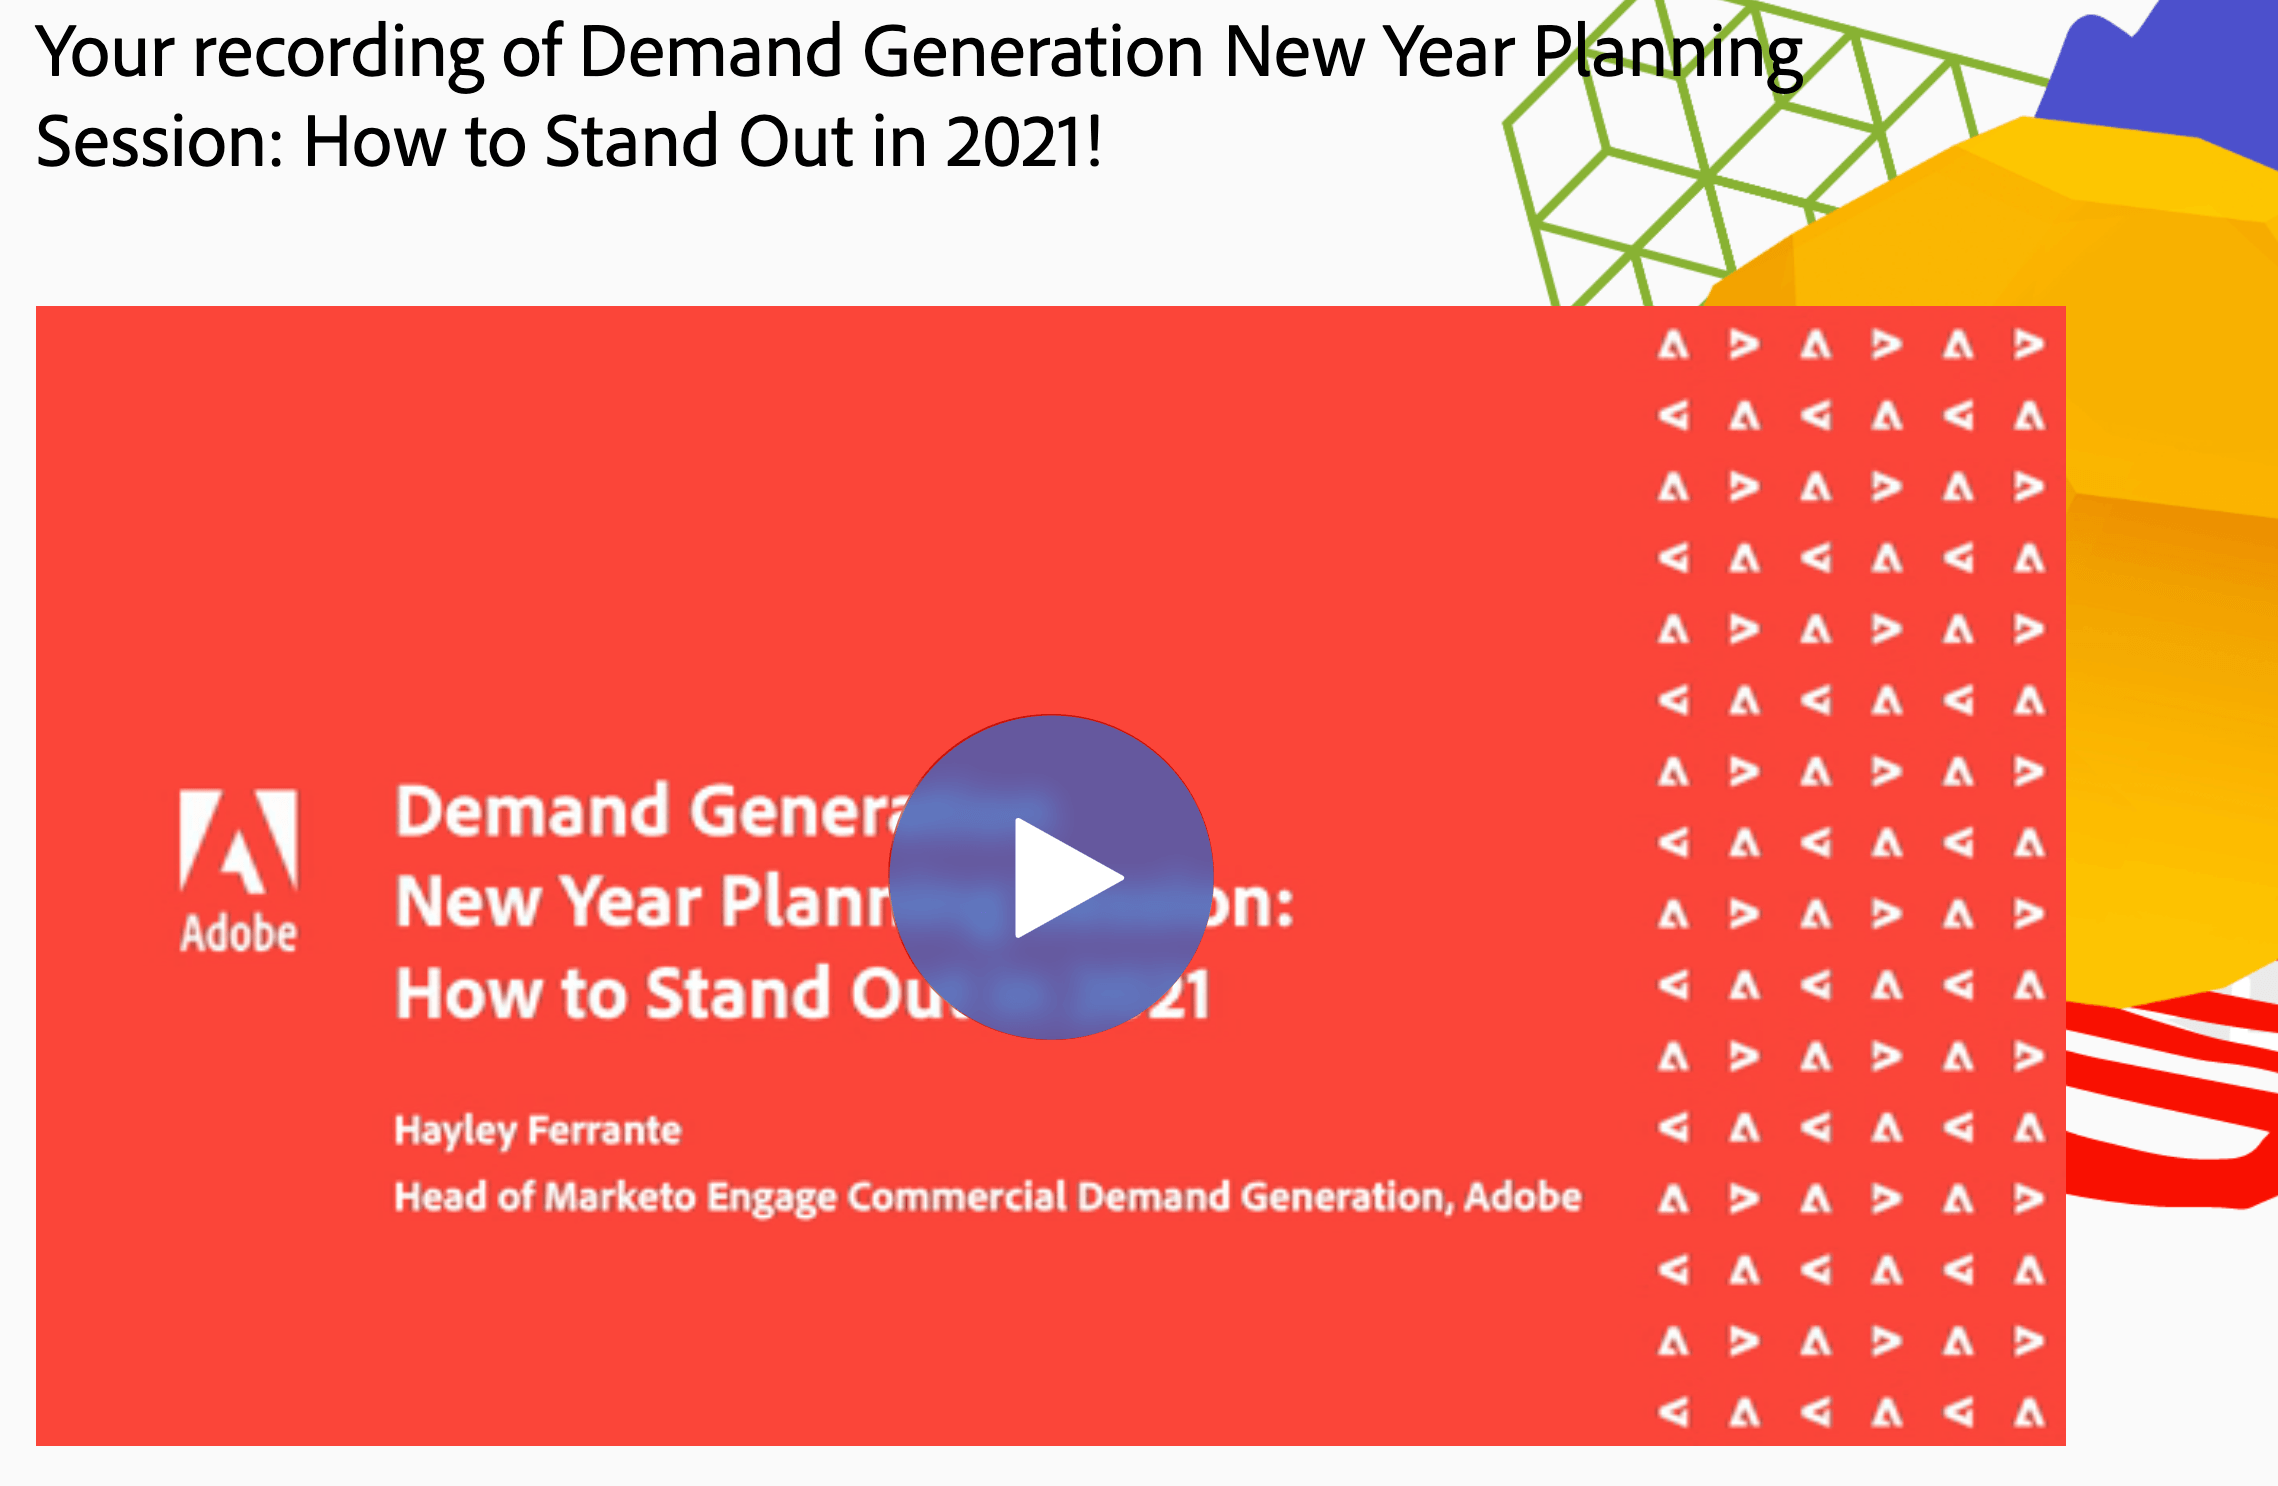 Hayley Ferrante's webinar, 'How to Stand Out in 2021'